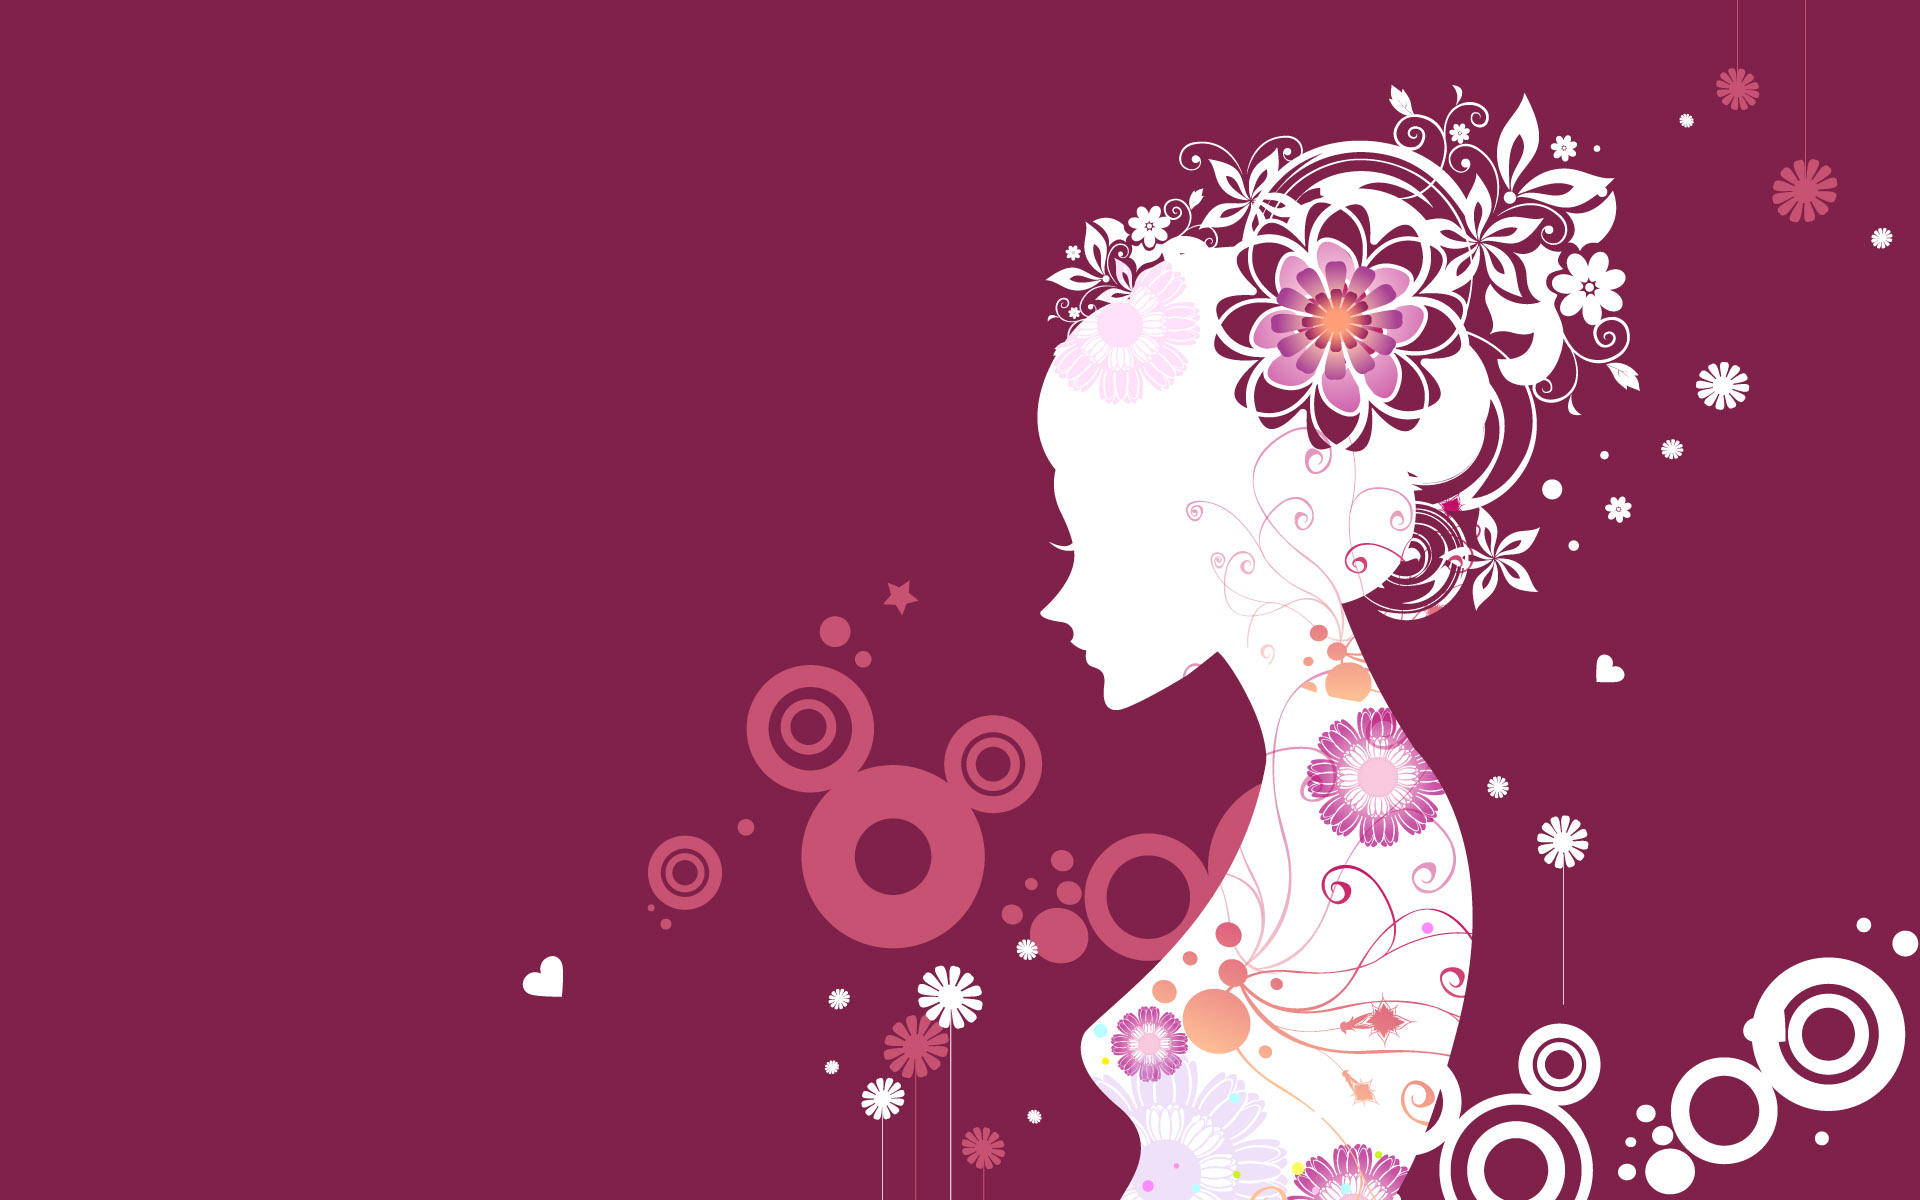 New Vector Girl Full HD Wallpaper #10061 | Just another High Wallpaper